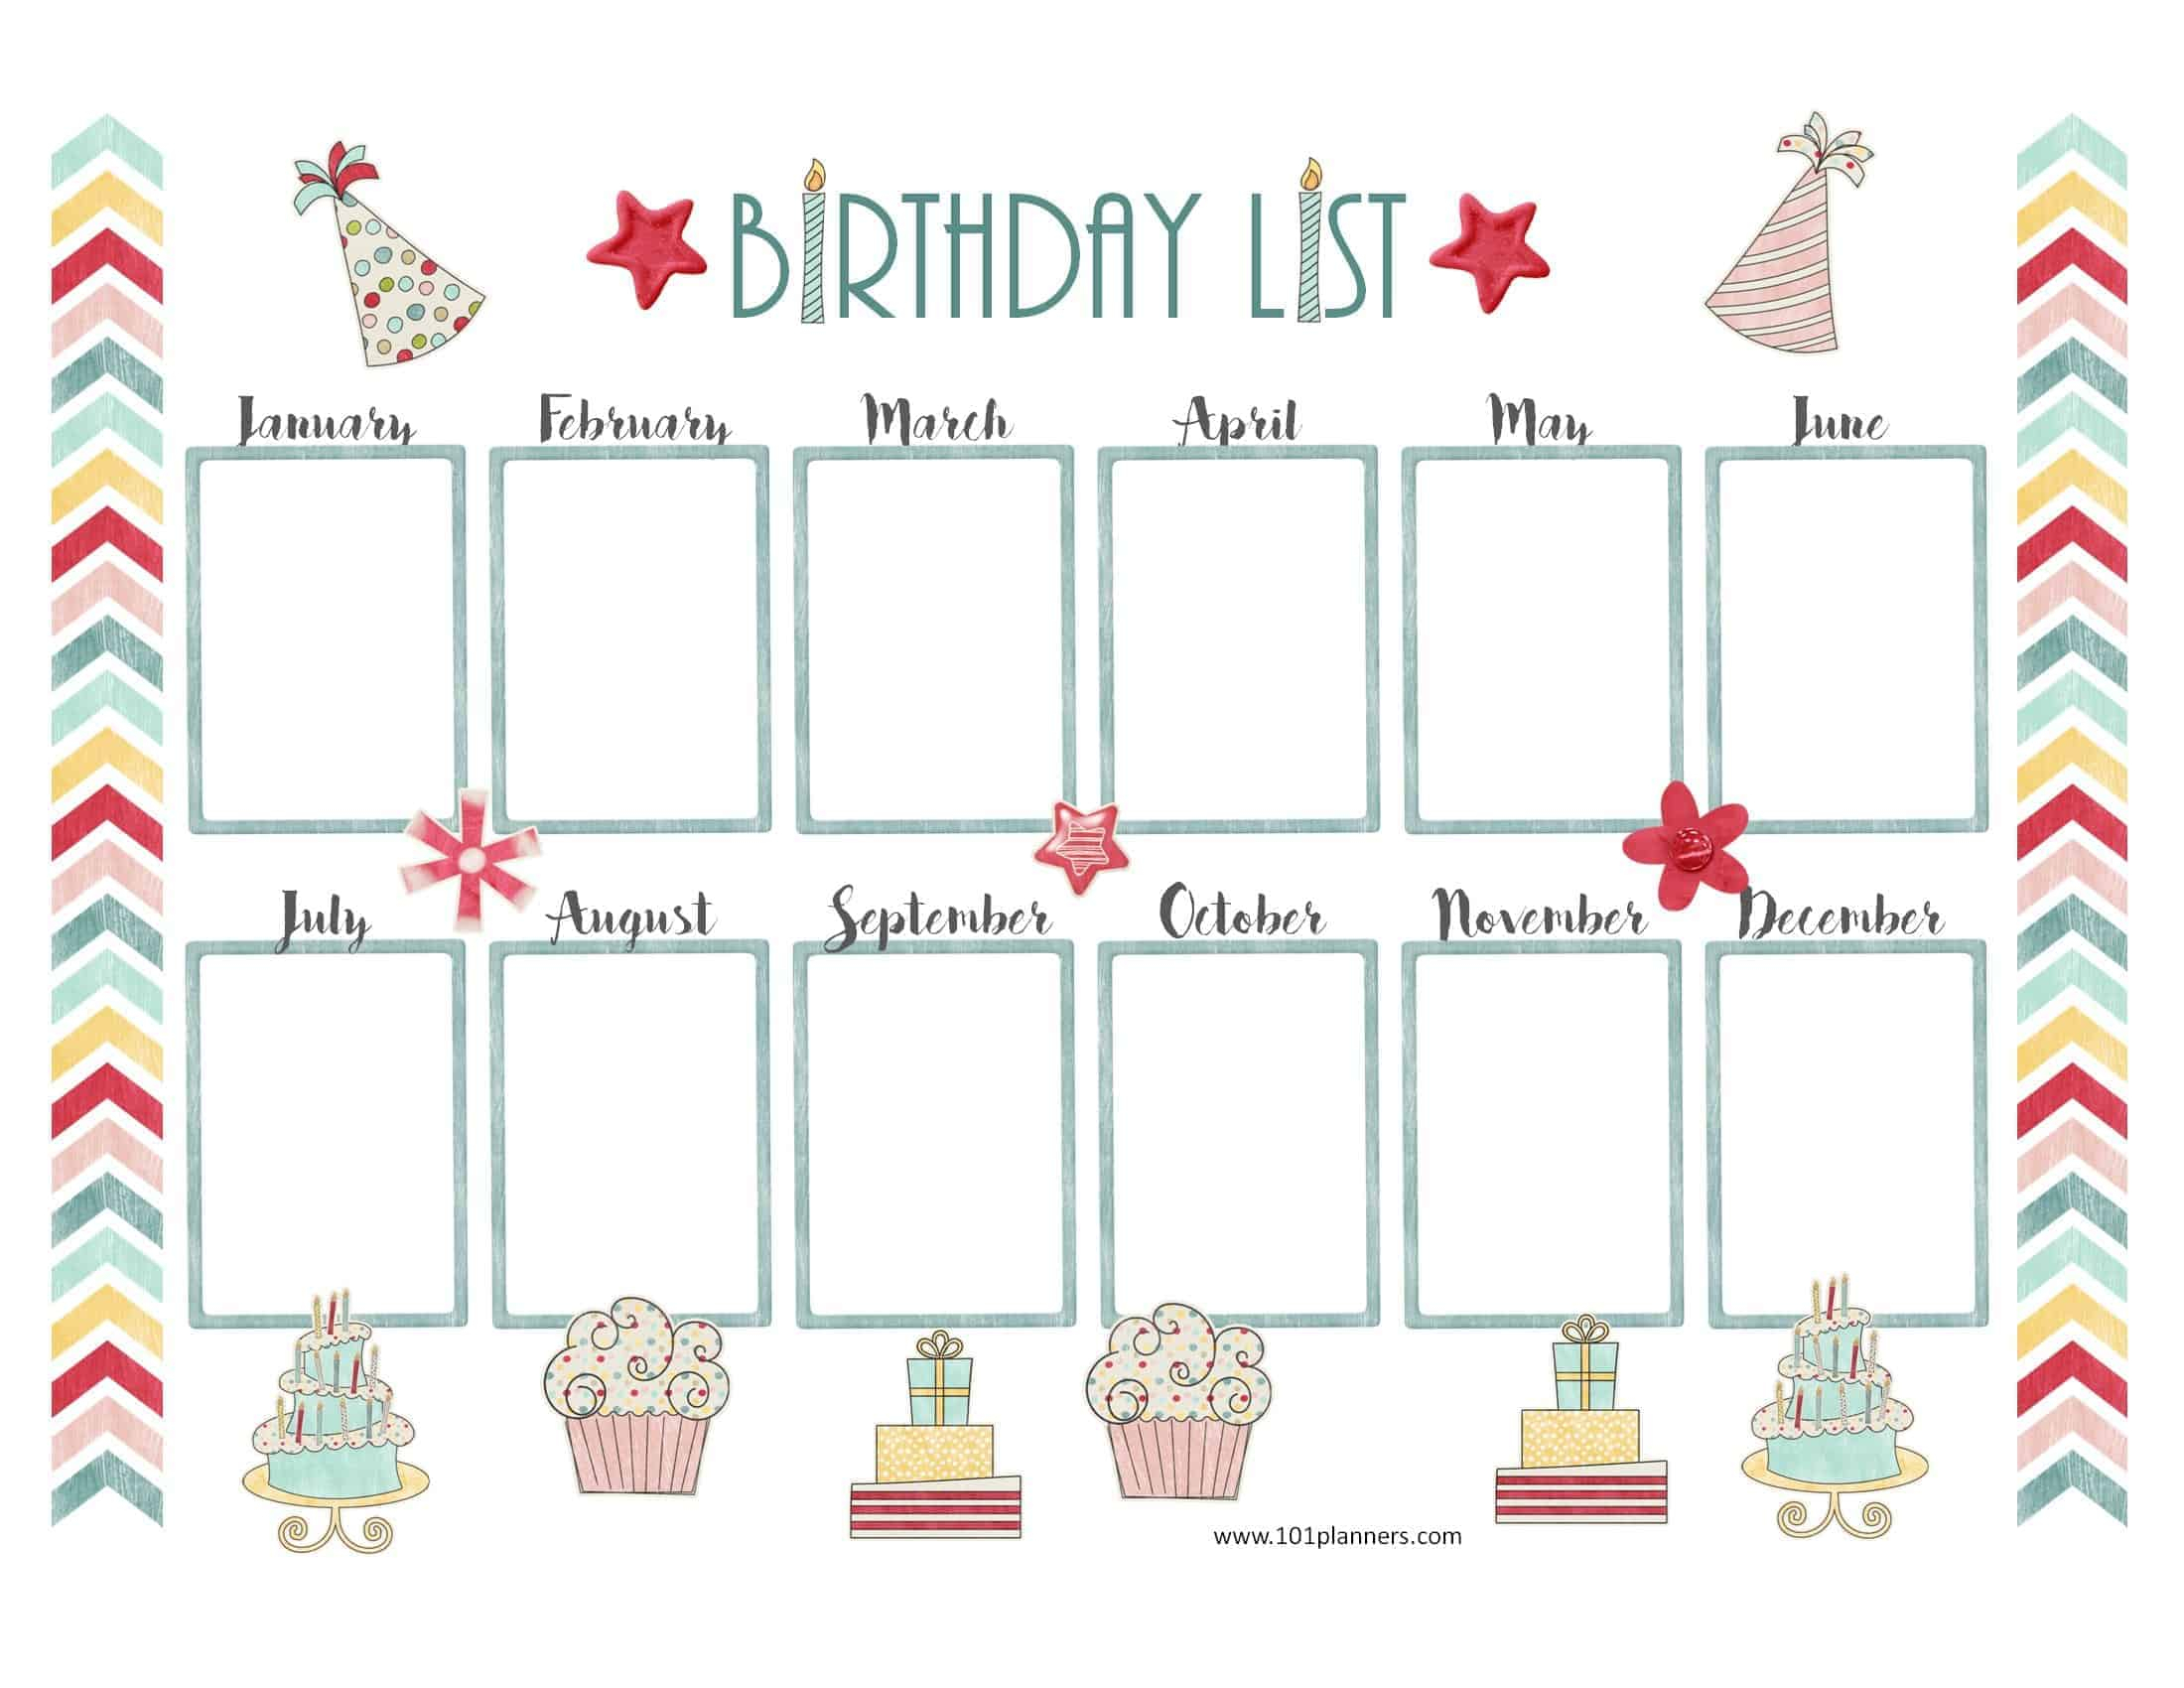 Birthday Calendar Template regarding Free Printable Birthday Chart